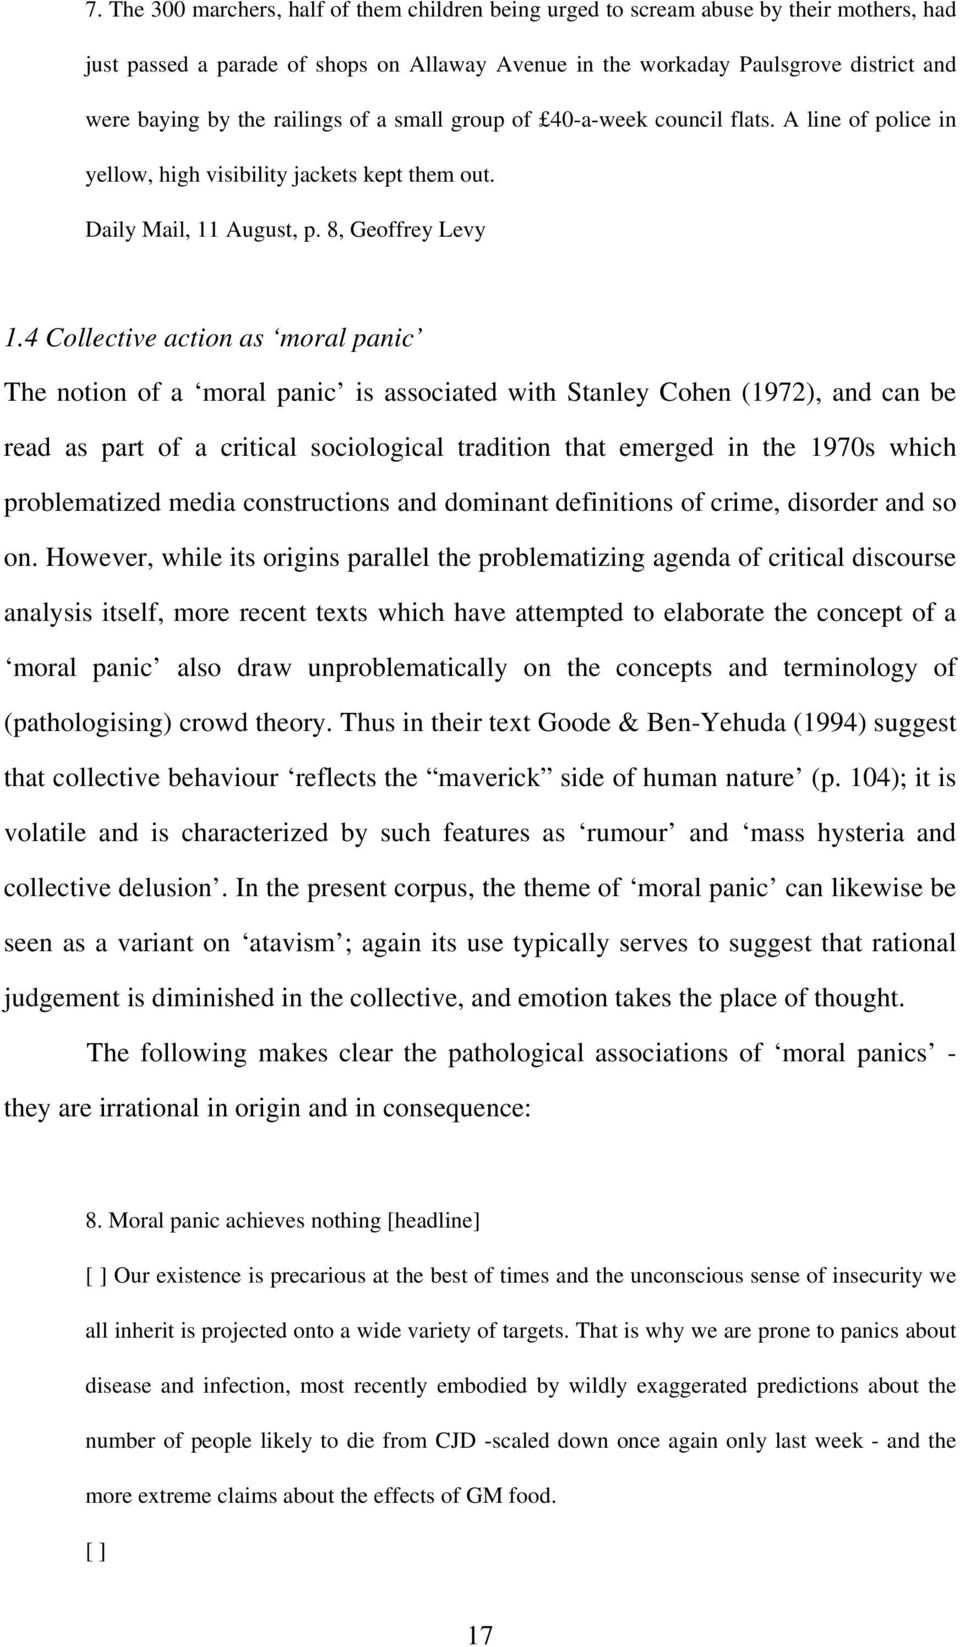 4 Collective action as moral panic The notion of a moral panic is associated with Stanley Cohen (1972), and can be read as part of a critical sociological tradition that emerged in the 1970s which